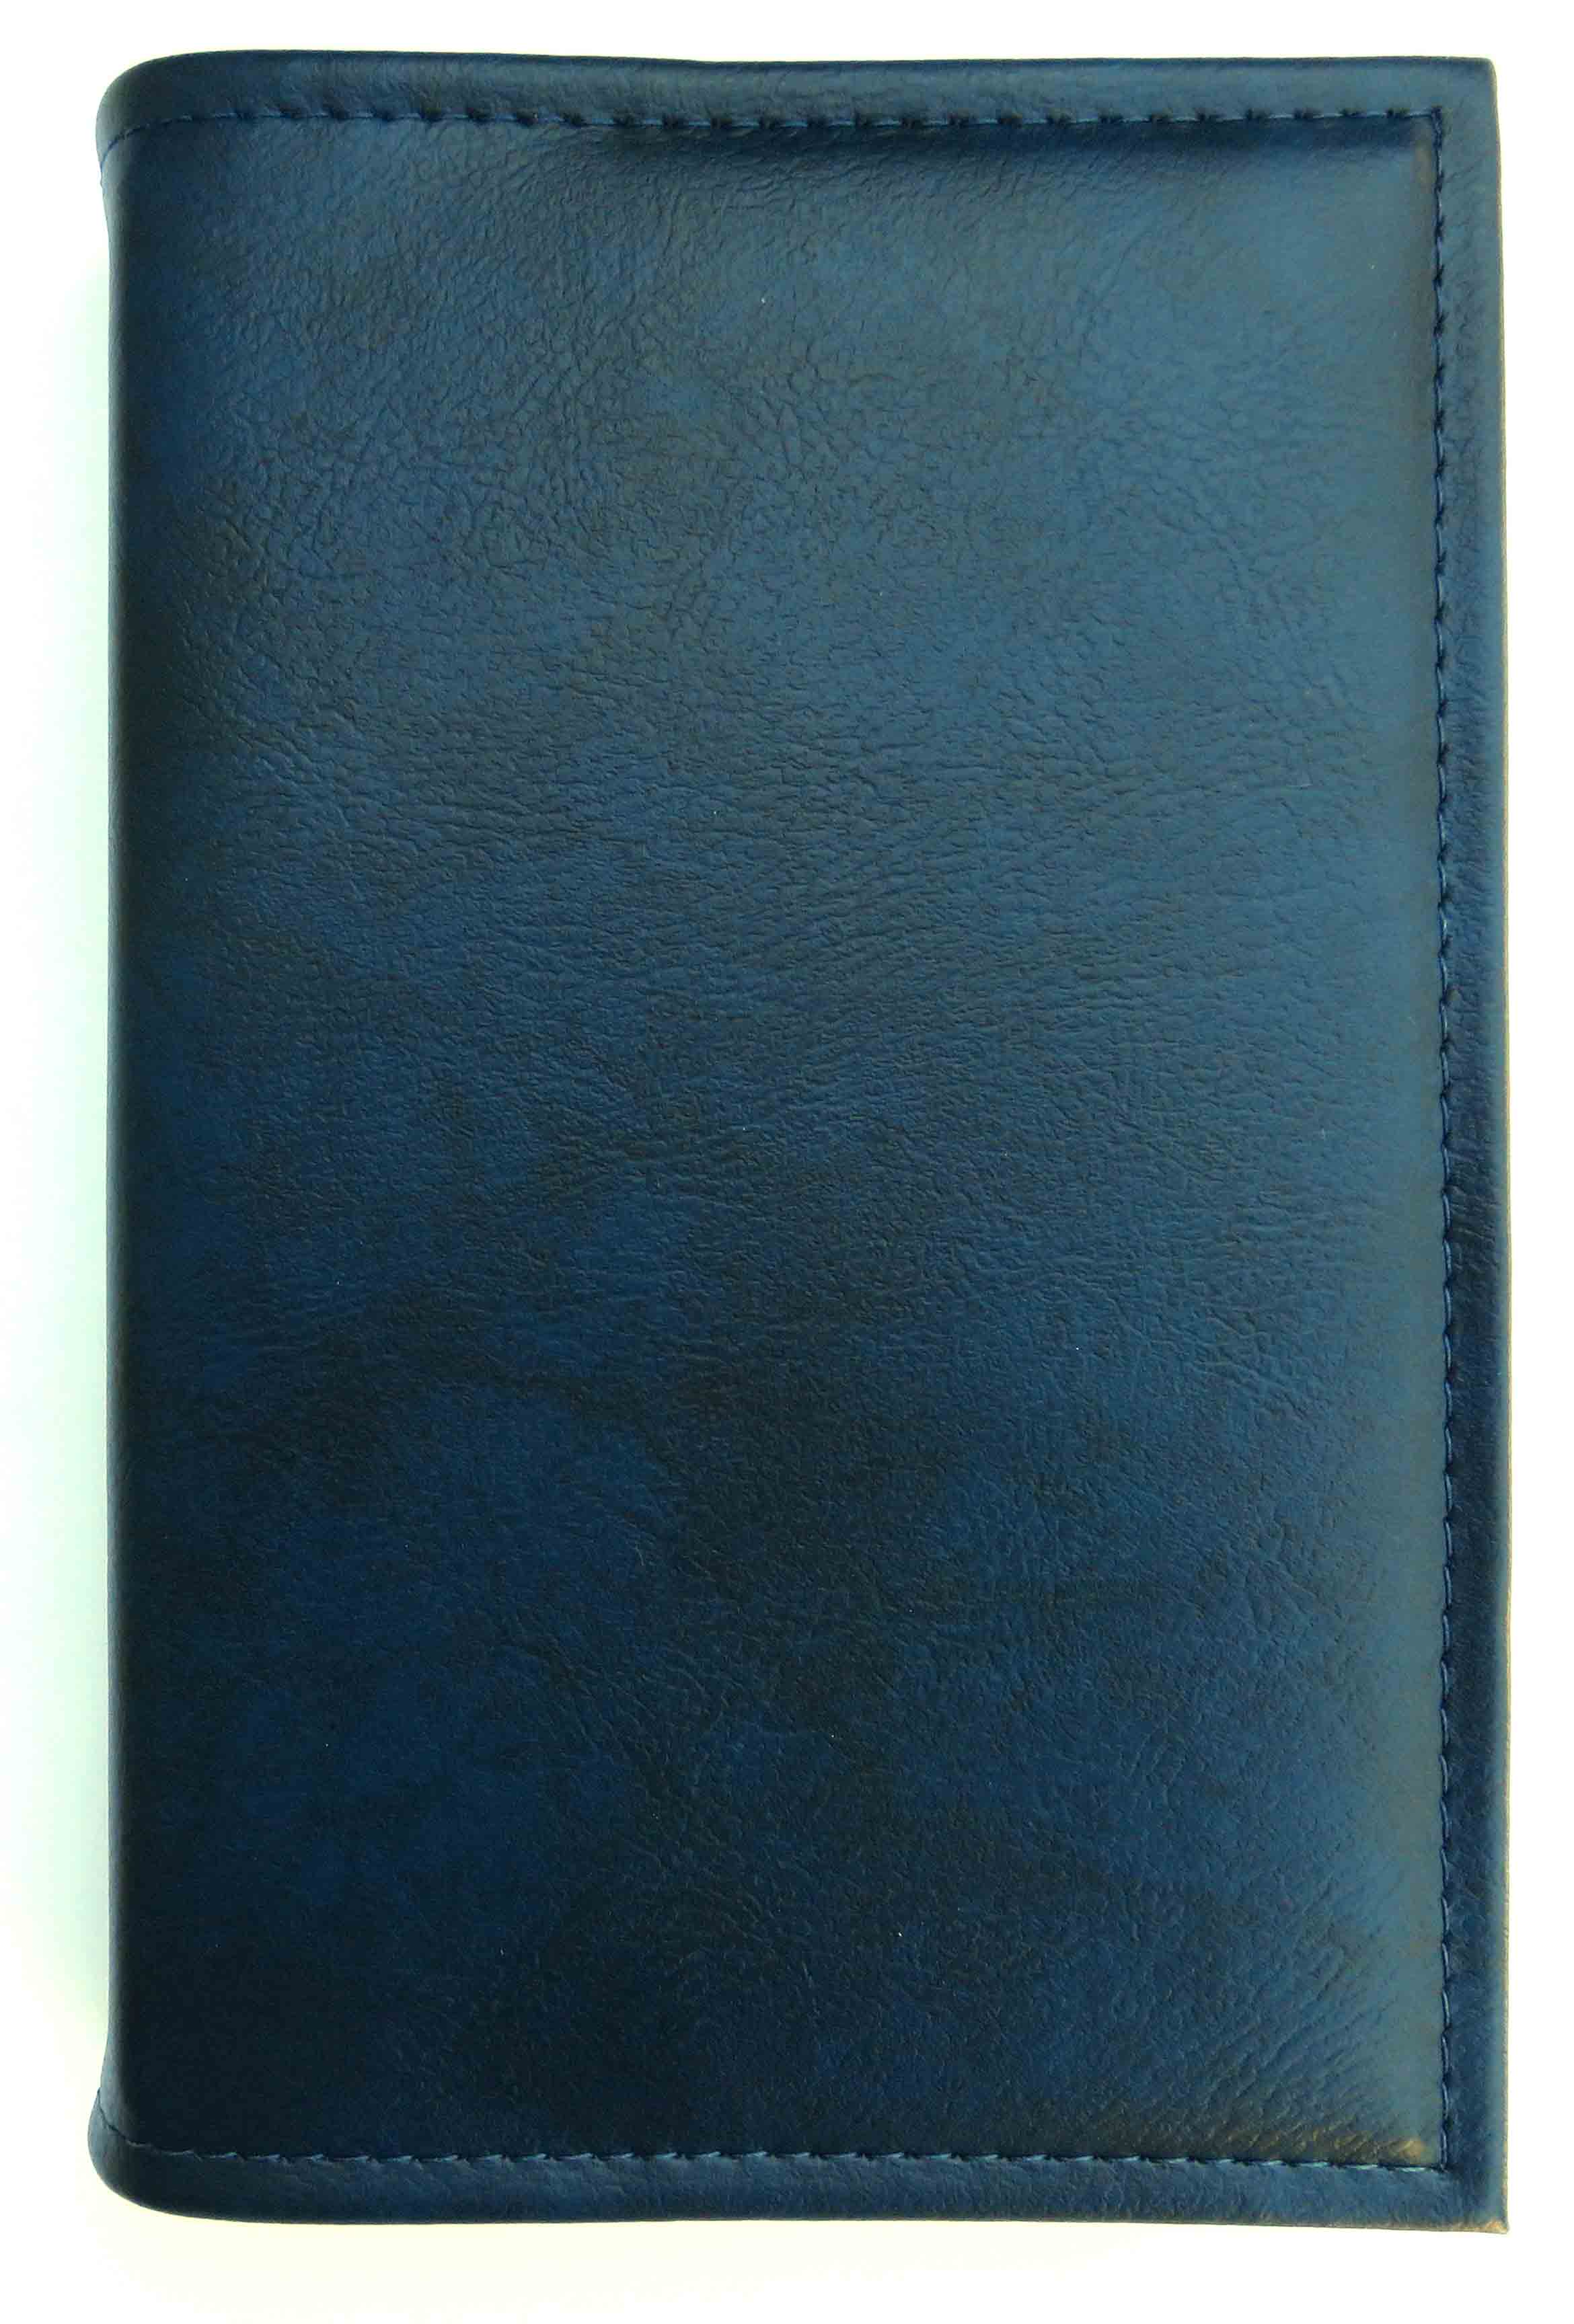 Blue Covered Book : Plain blue book cover imgkid the image kid has it